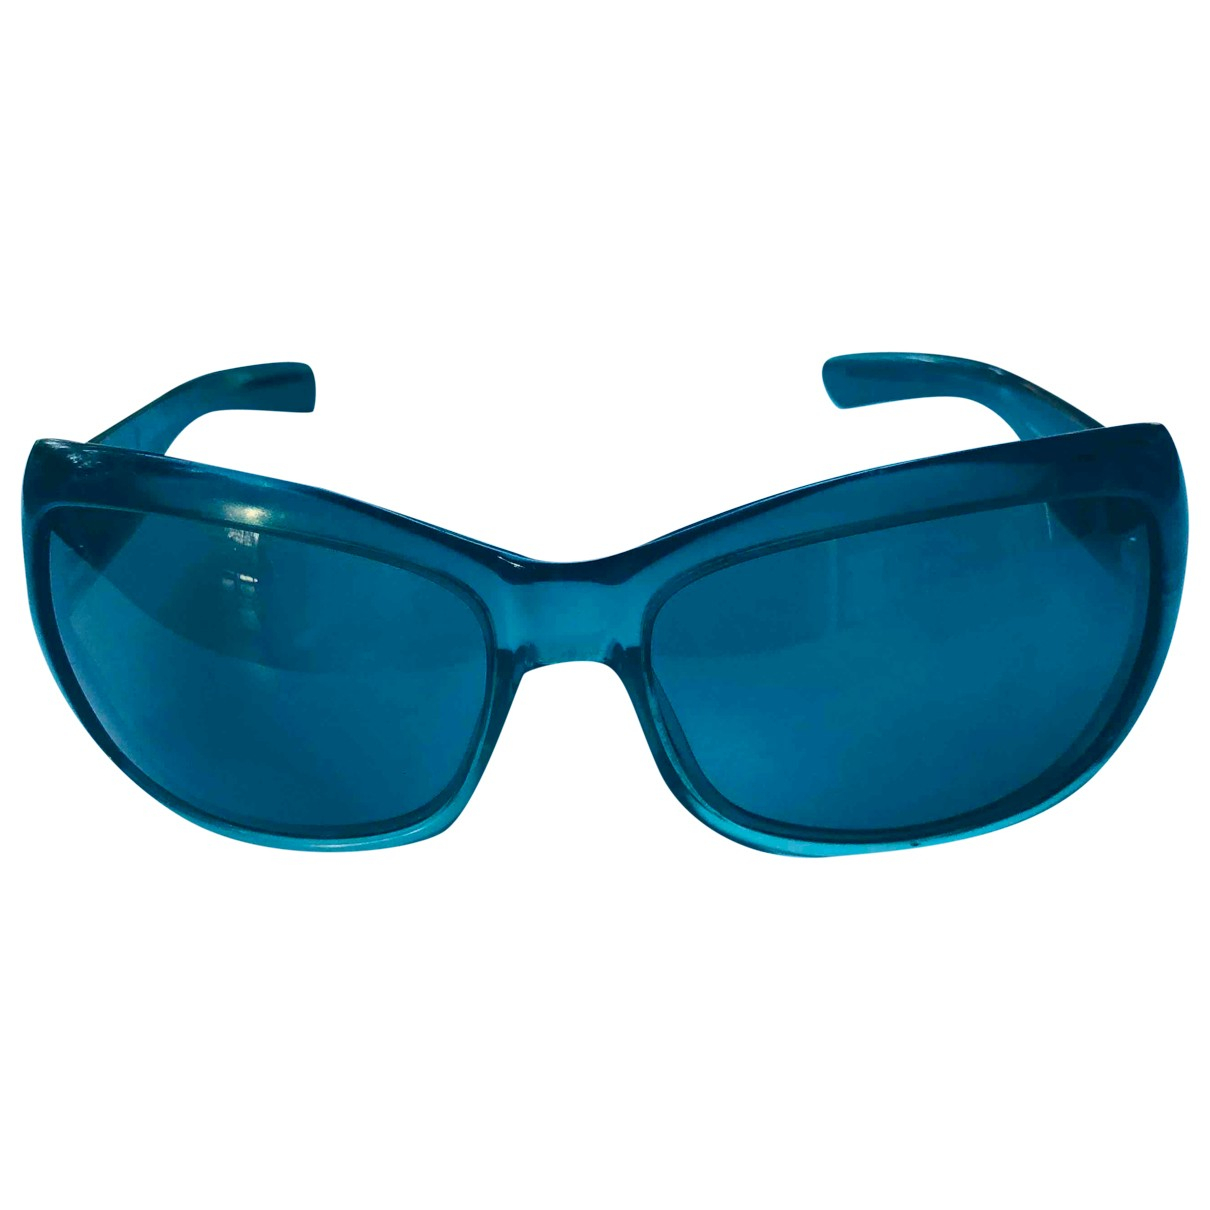 Giorgio Armani \N Blue Sunglasses for Women \N